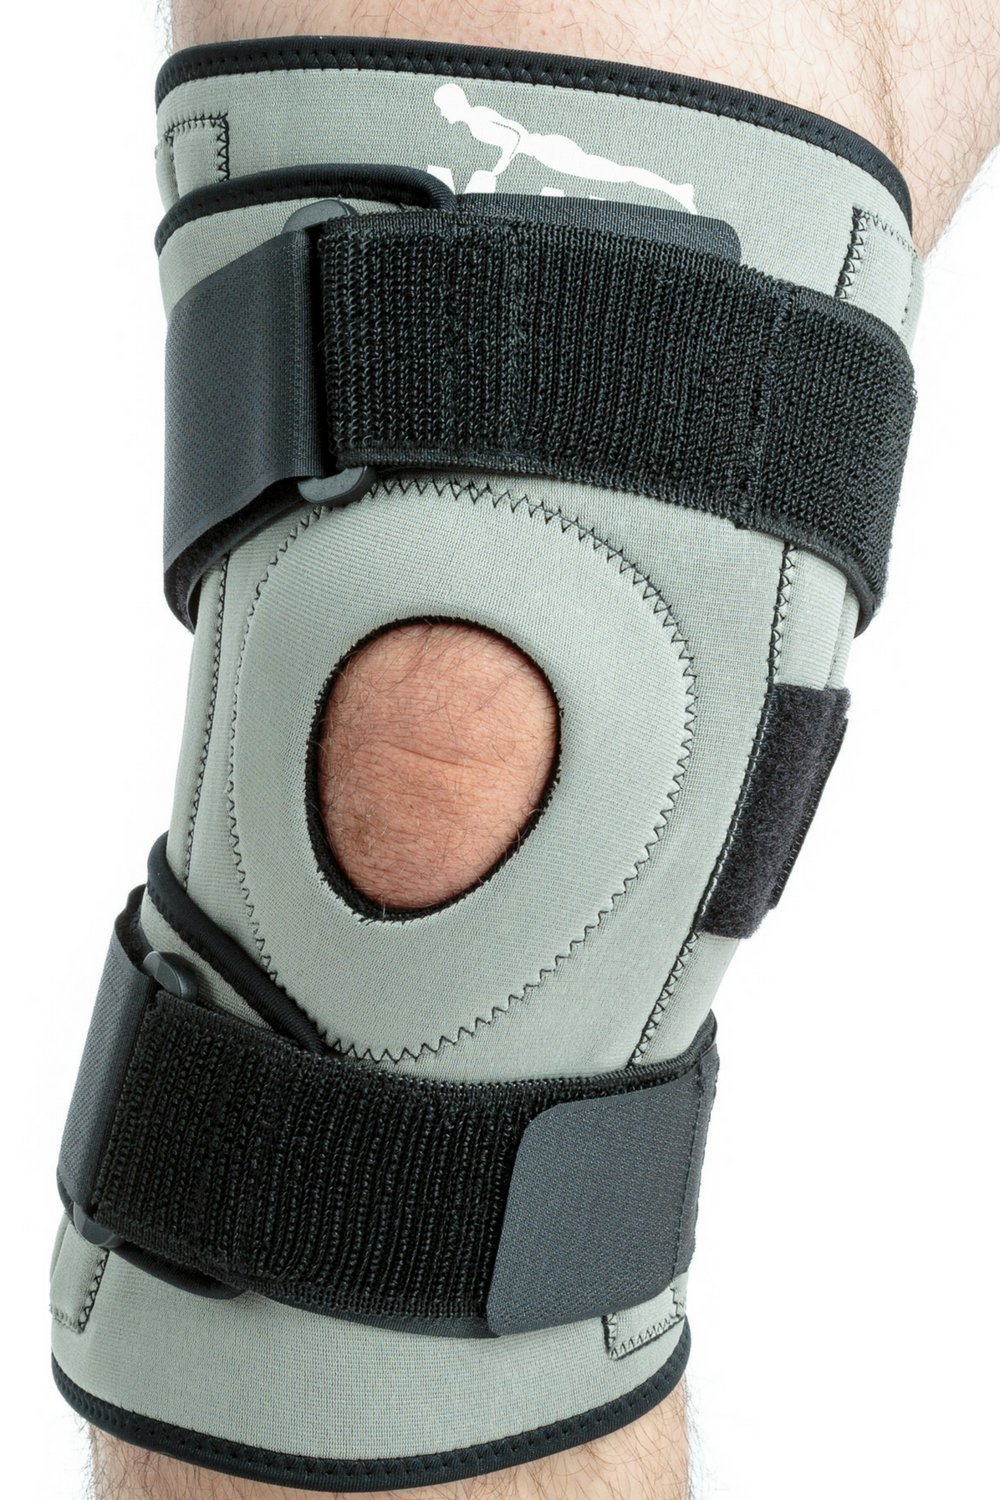 Mava Sports Knee Brace for Joint Pain and Arthritis Relief – Injury Recov 1